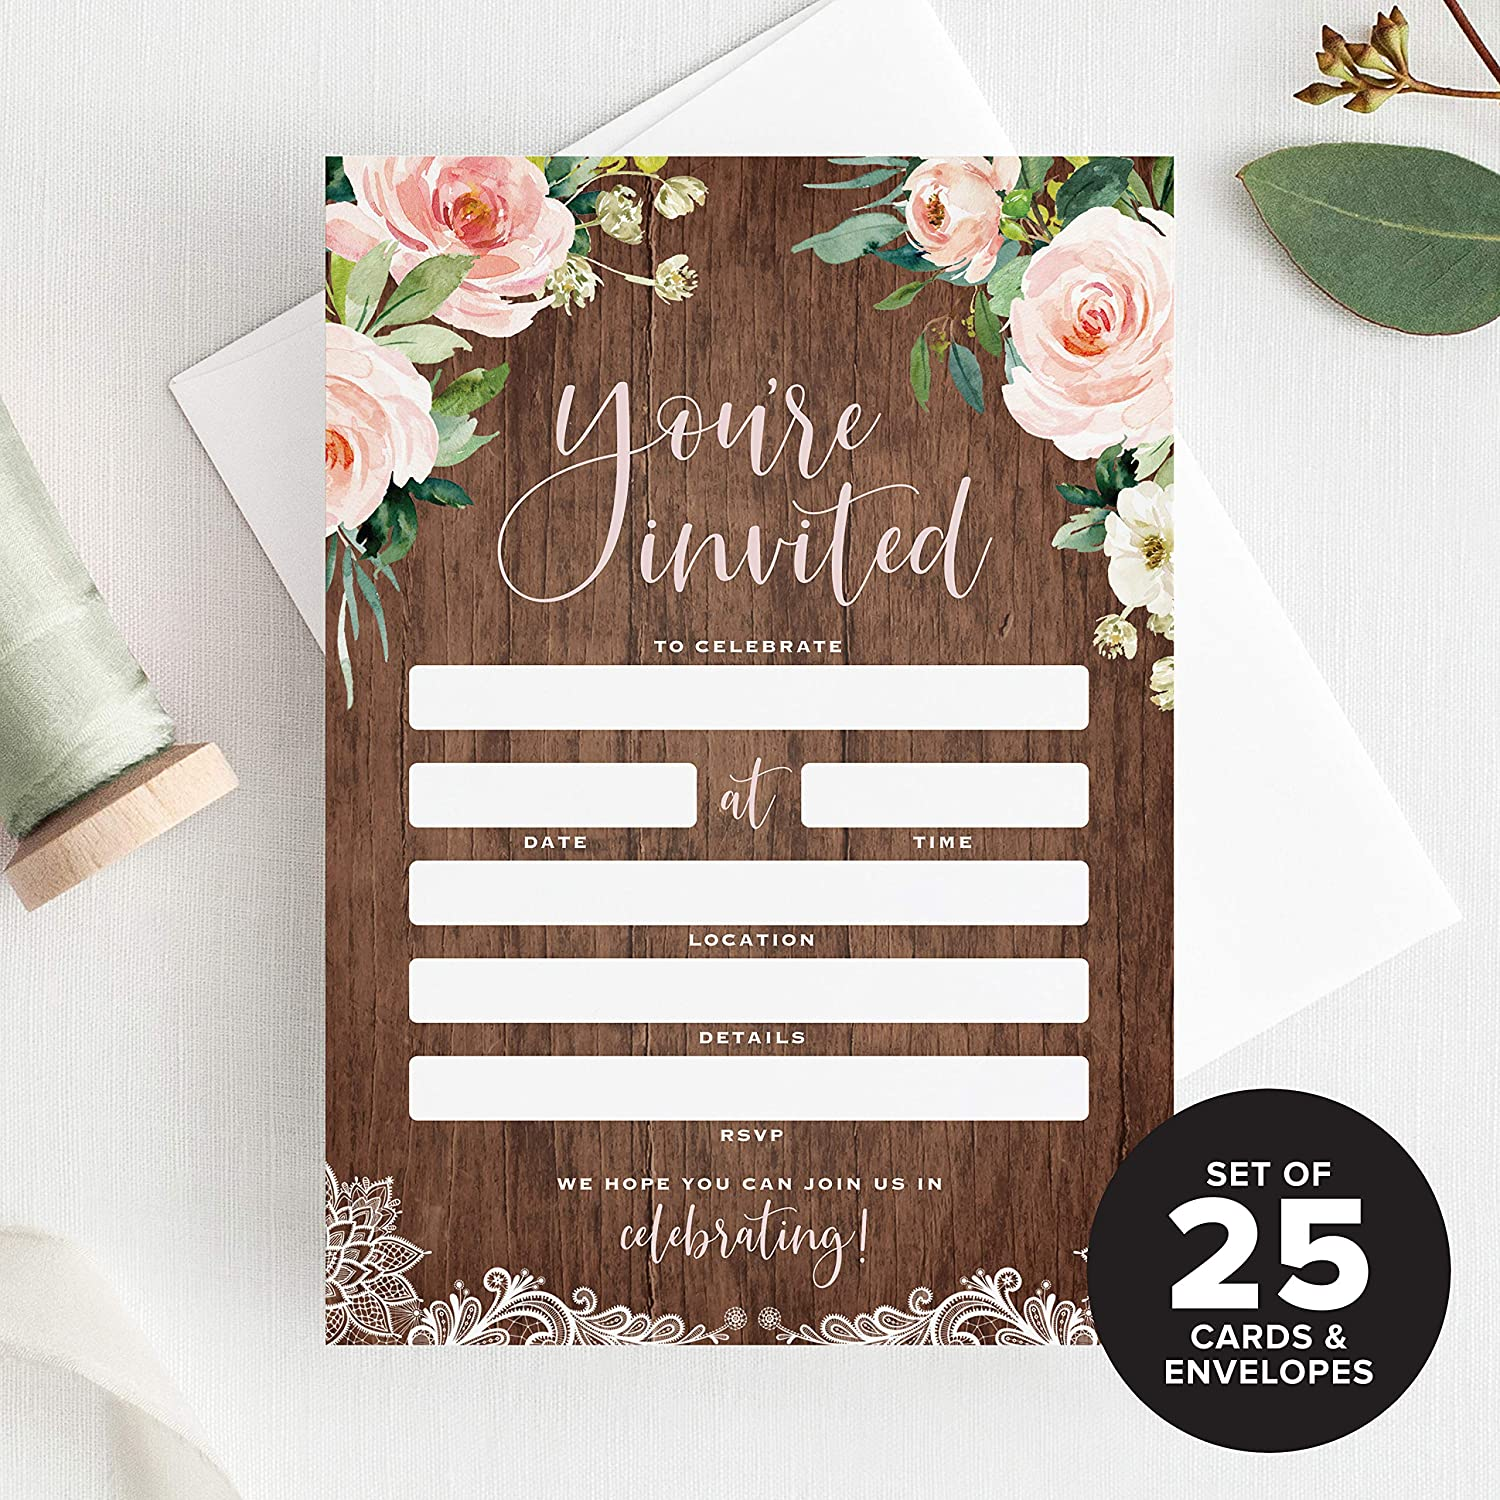 Engagement Wood and Floral Invites Perfect for: Weddings Anniversary or Special Event /— Fill in Cards Bliss Paper Boutique 25 Rustic Invitations with Envelopes for All Occasions Birthday Party Bridal Showers